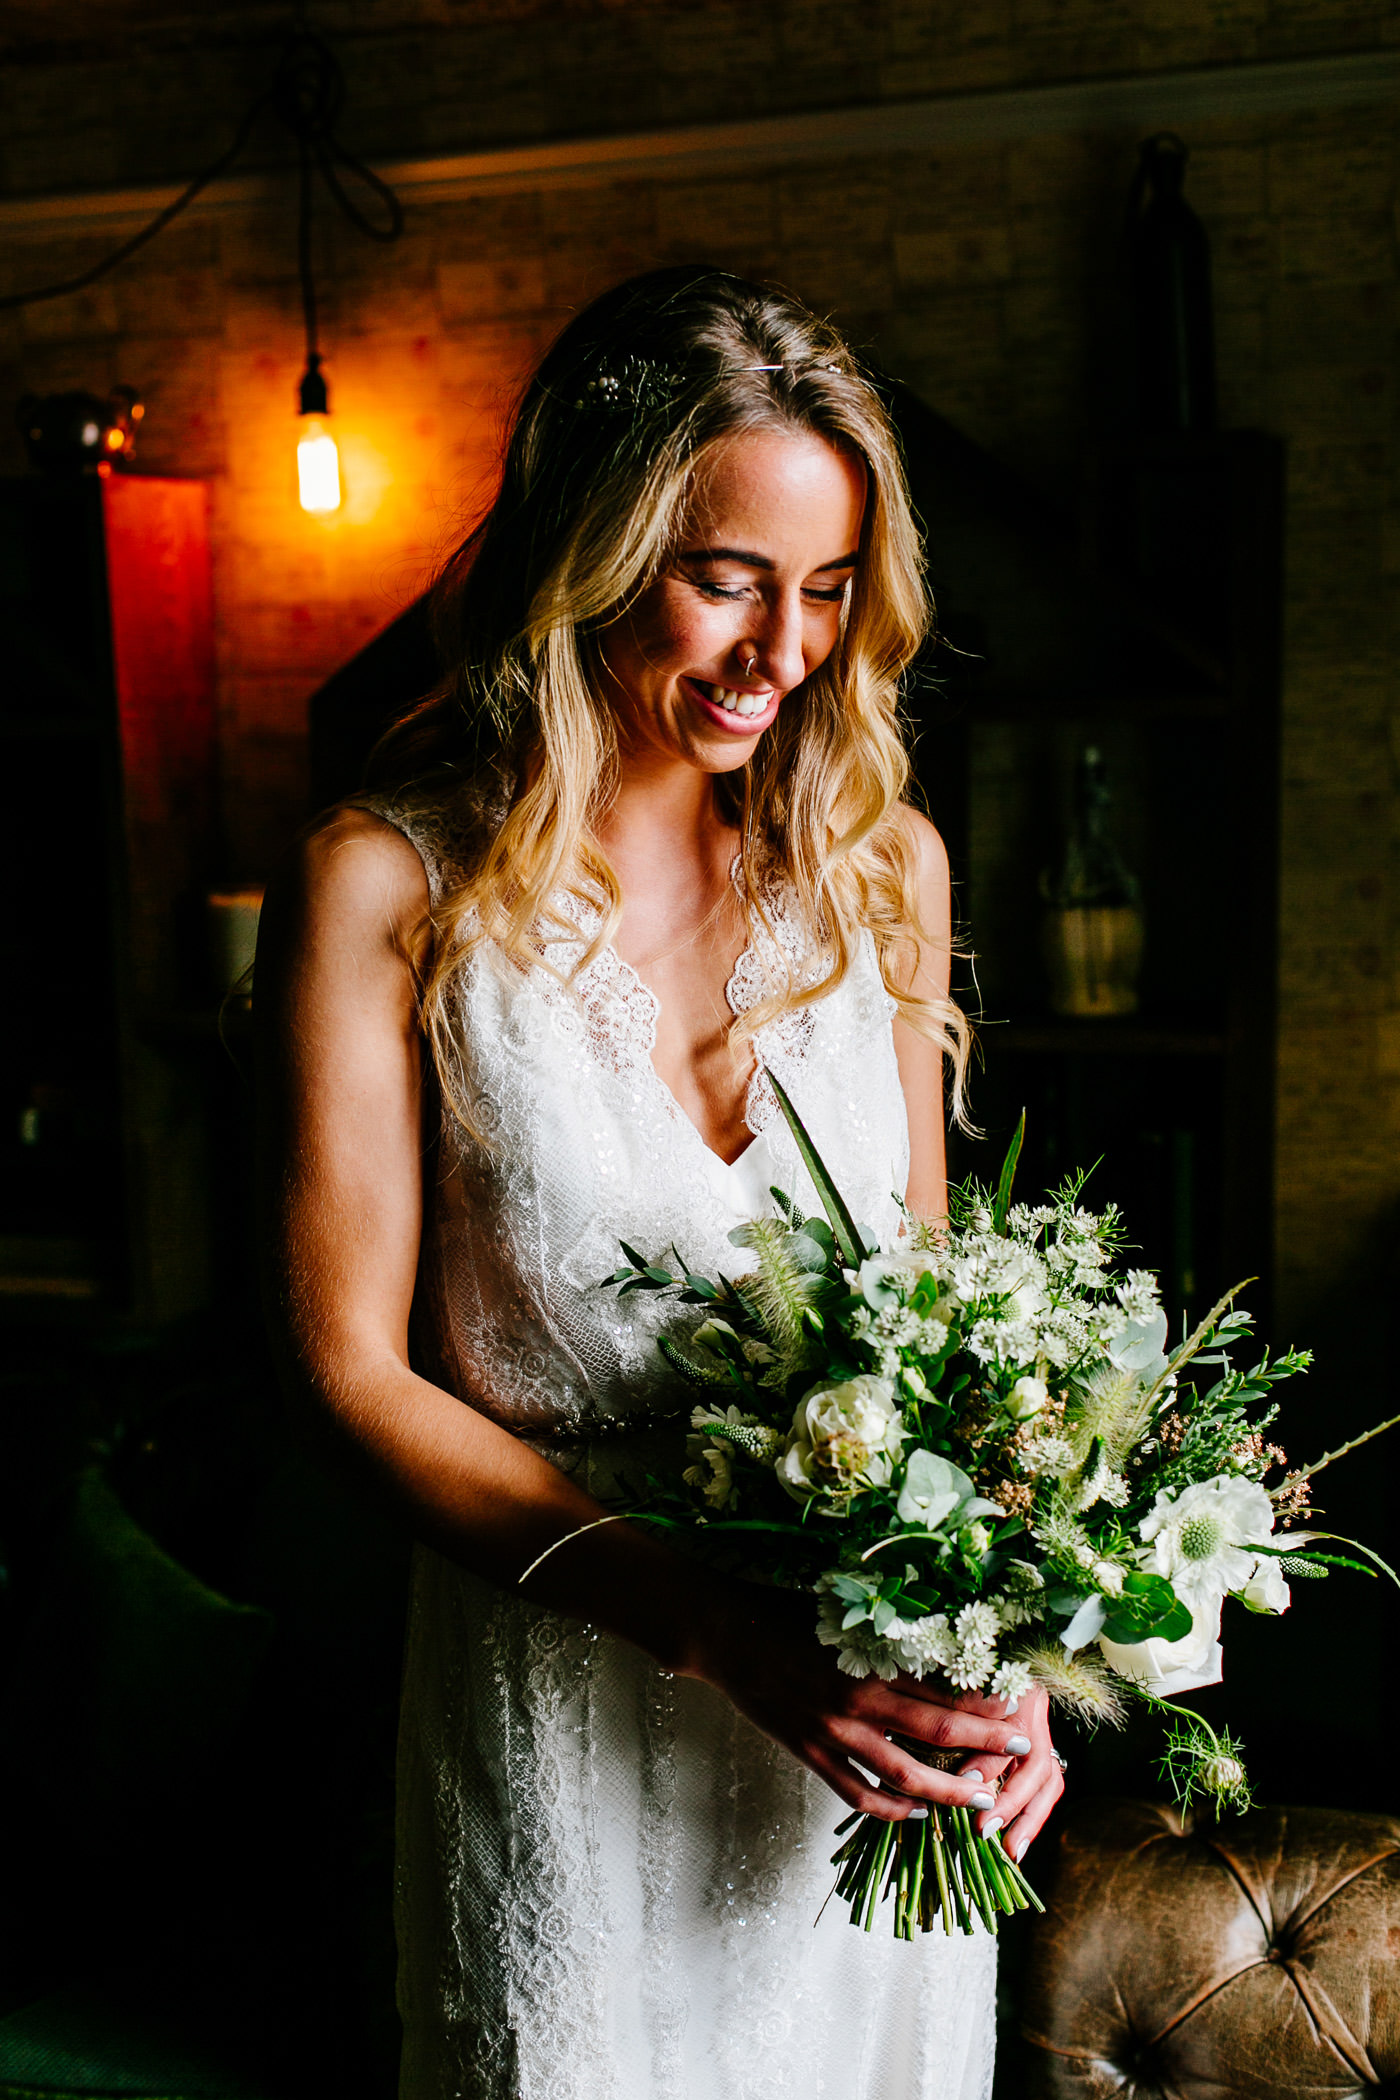 The-bell-in-Ticehurst-pub-kent-wedding-photographer-London-Epic-Love-Story-061